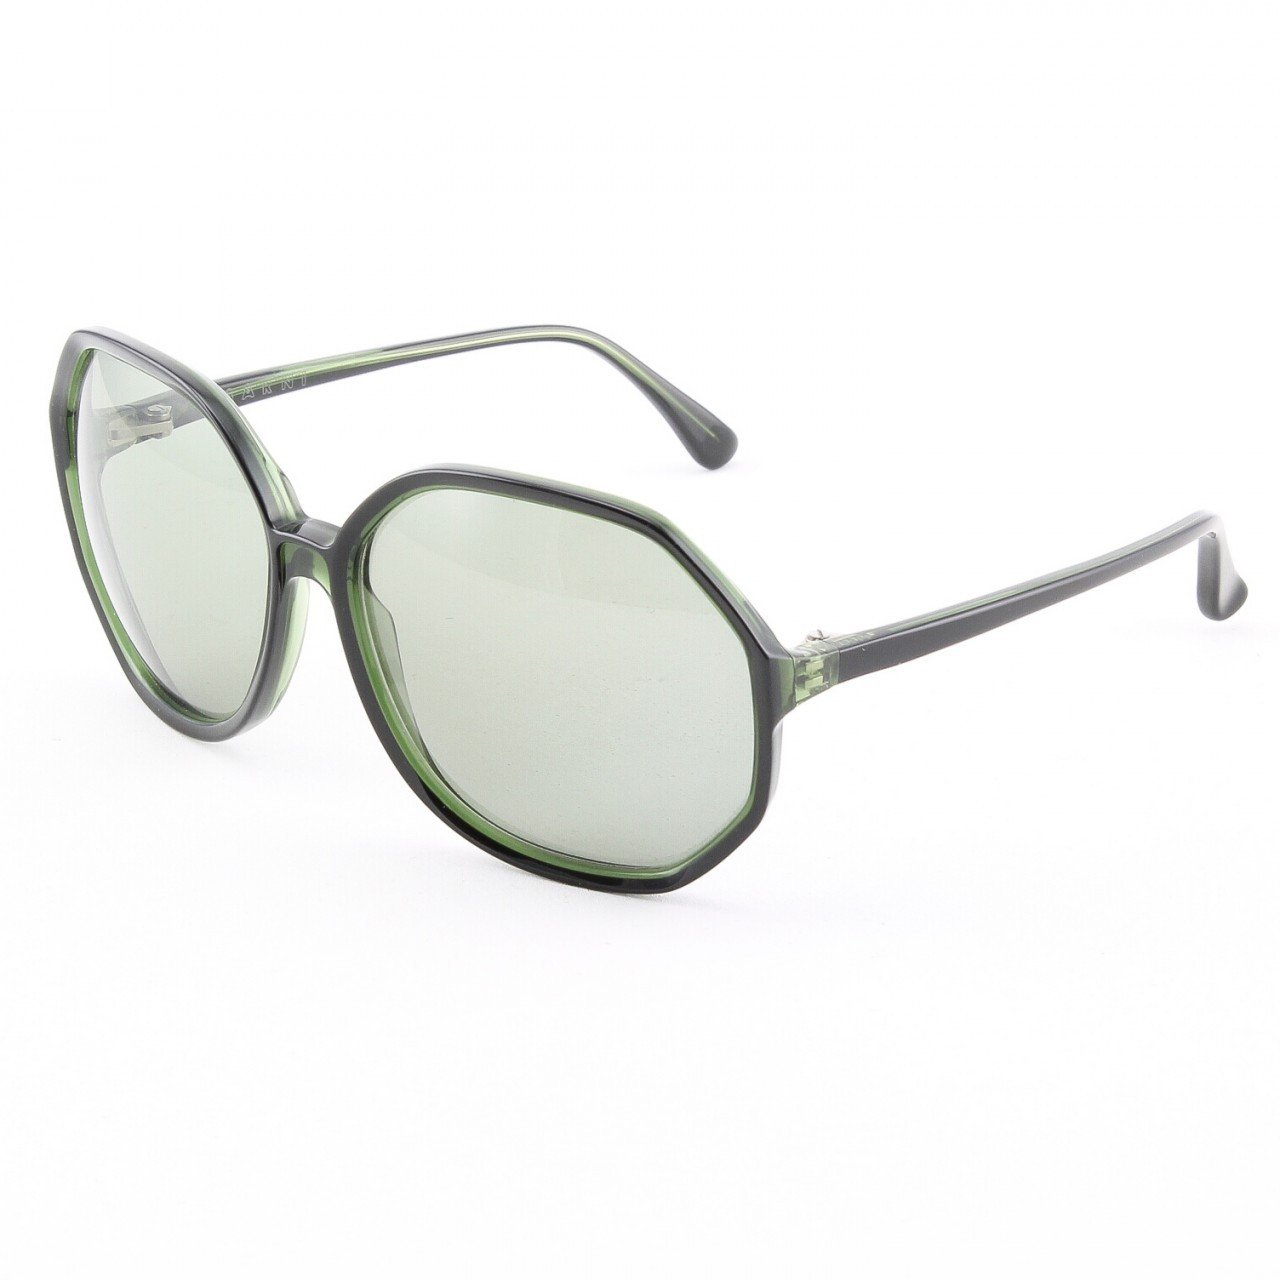 Marni MA181S Sunglasses Col. 01 Dark Green w/ Light Green Accents with Gray Gradient Lenses